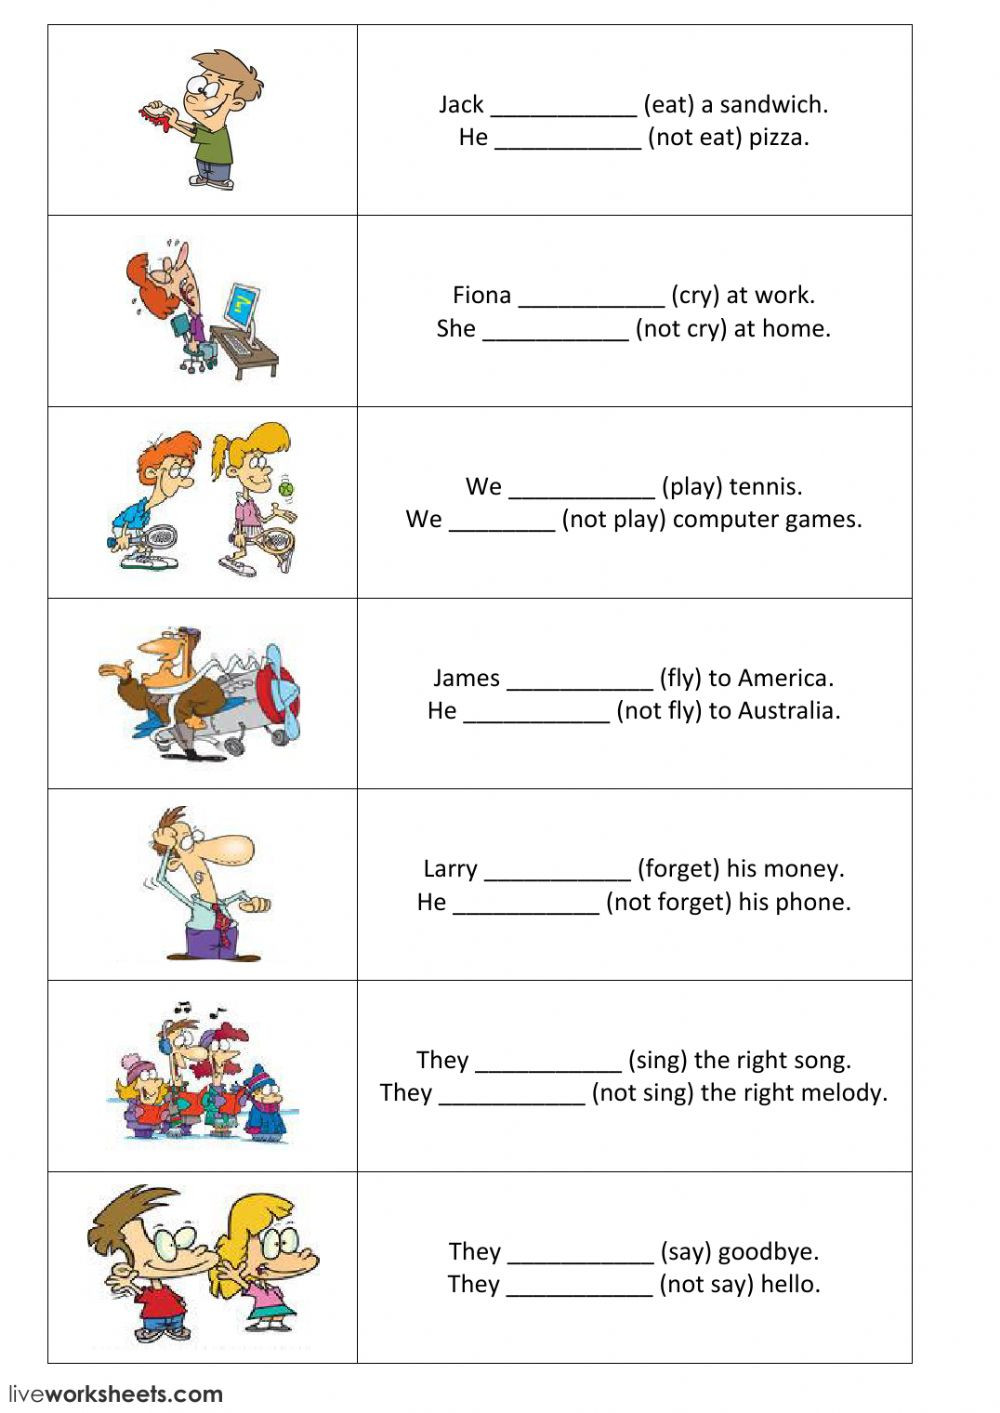 Simple Sentences Worksheet 3rd Grade Present Simple Positive and Negative Sentences Part 1